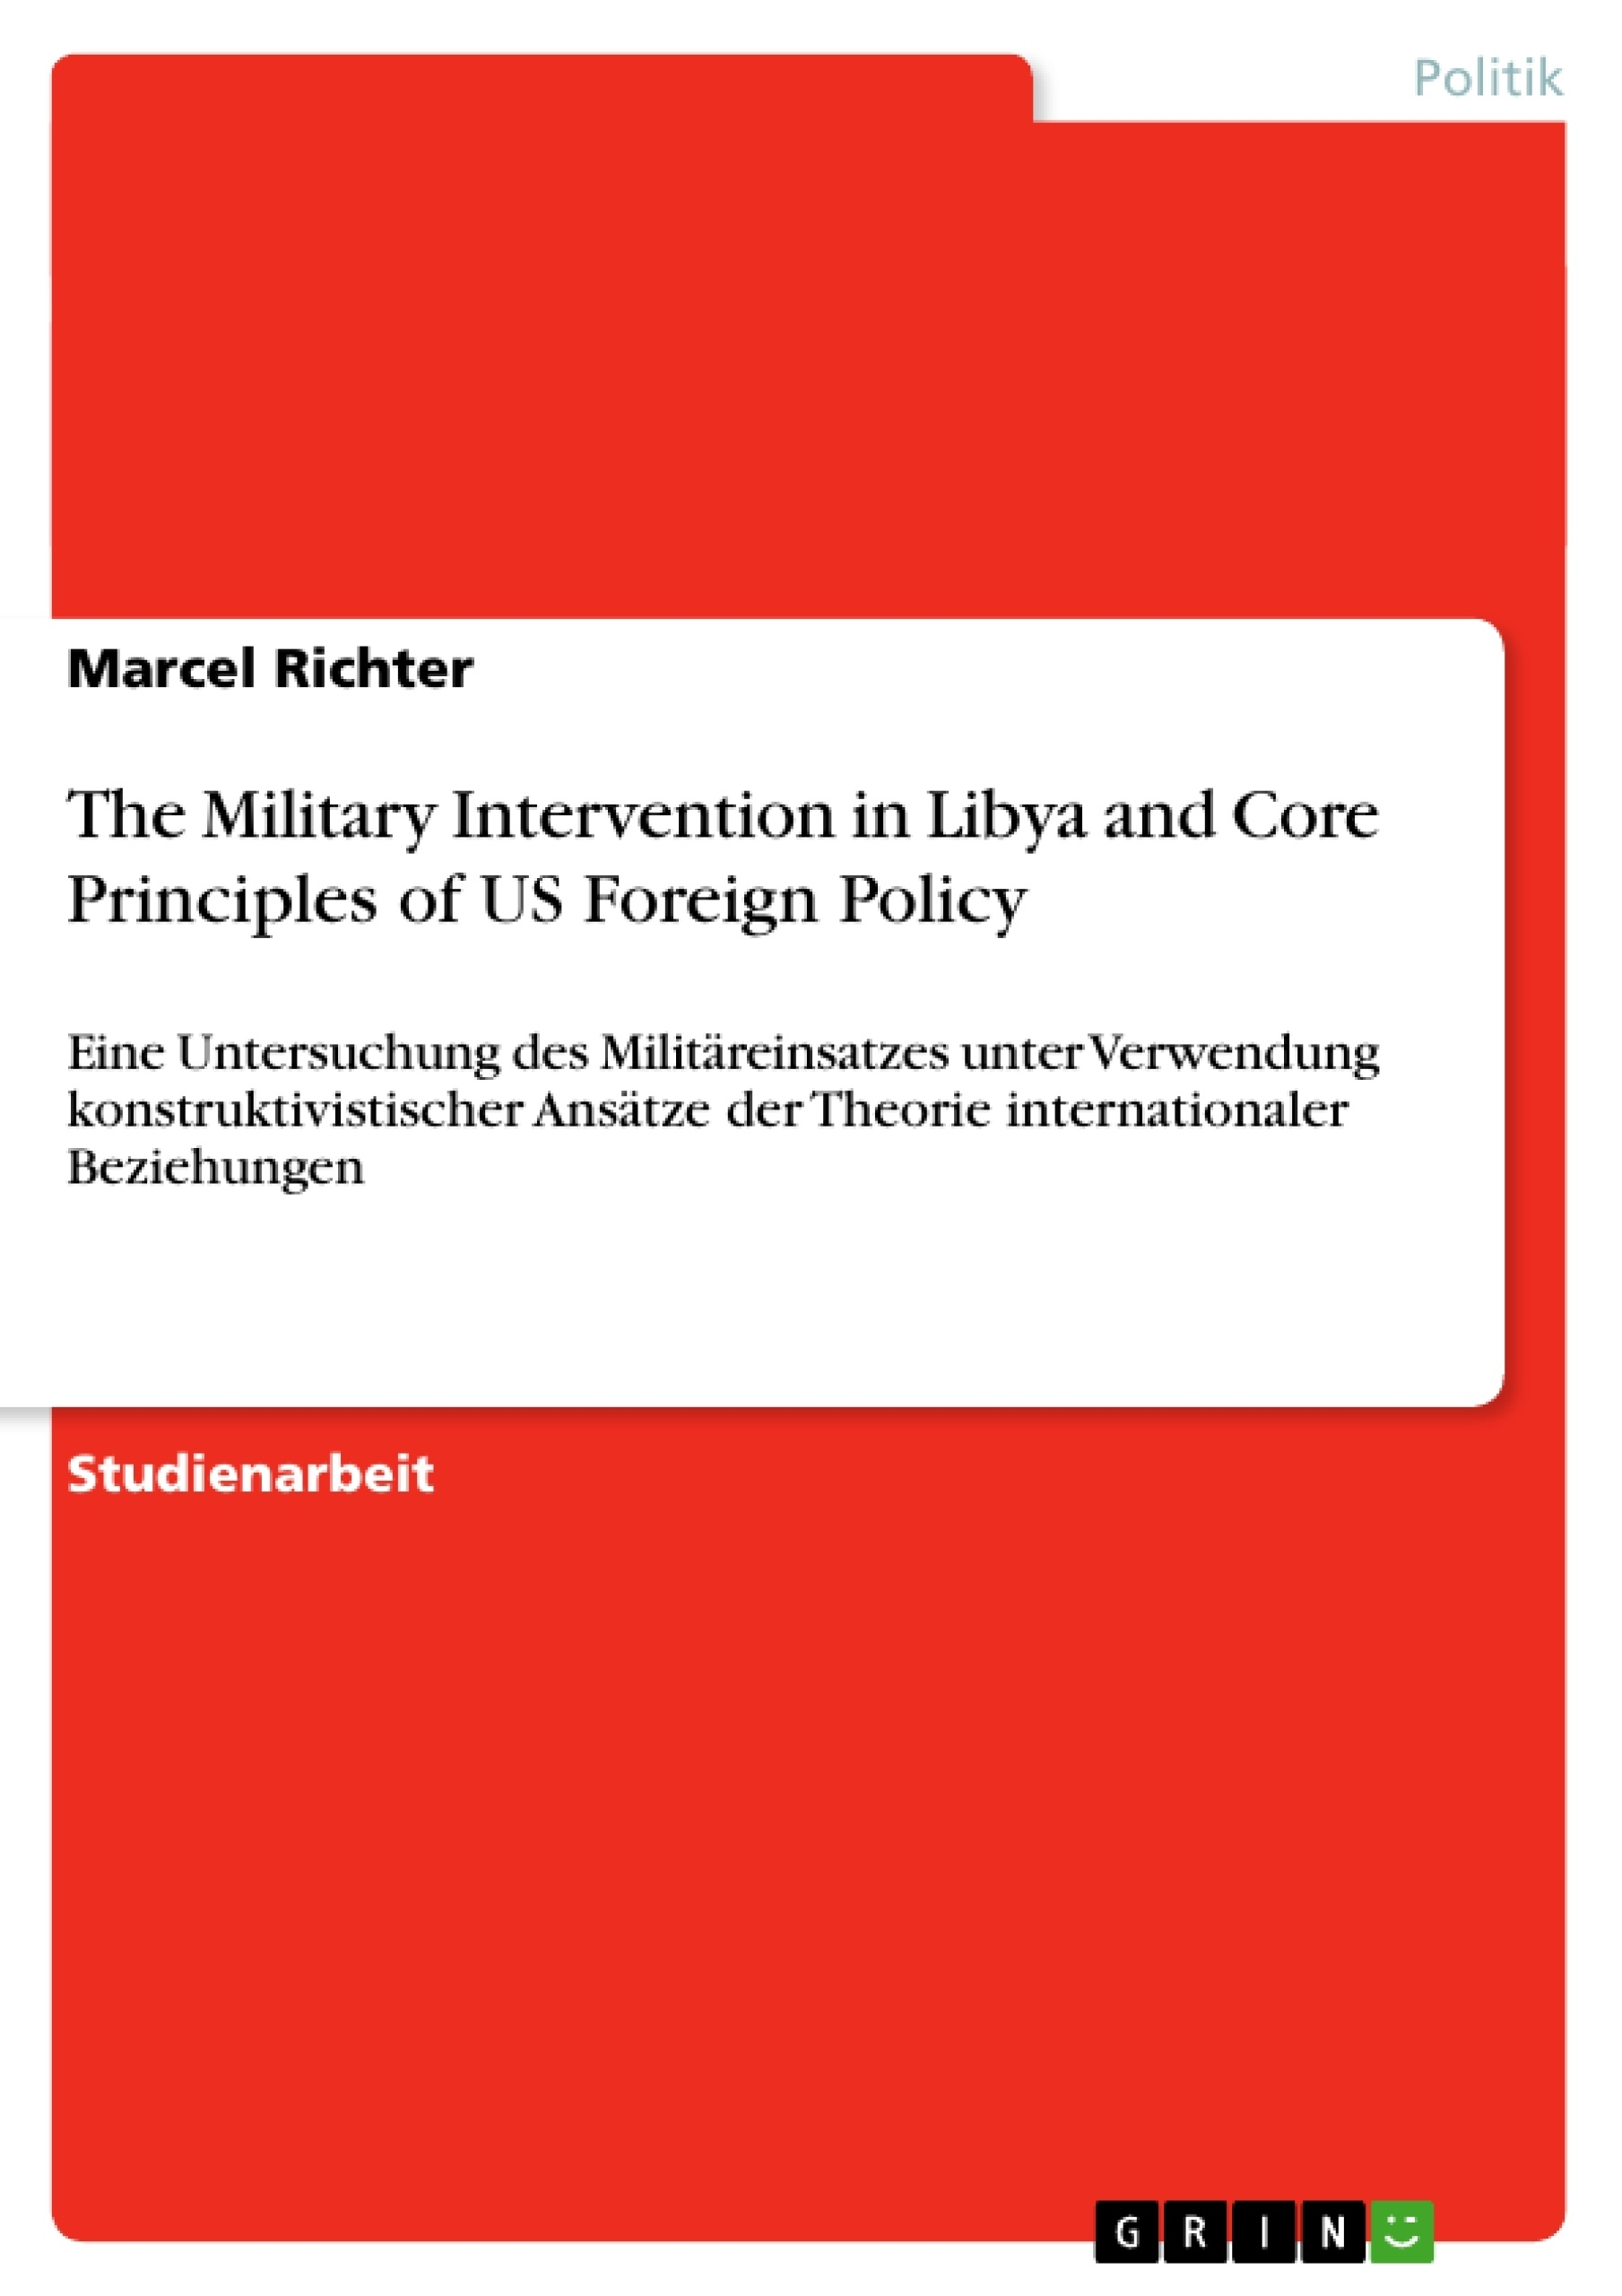 Titel: The Military Intervention in Libya and Core Principles of US Foreign Policy